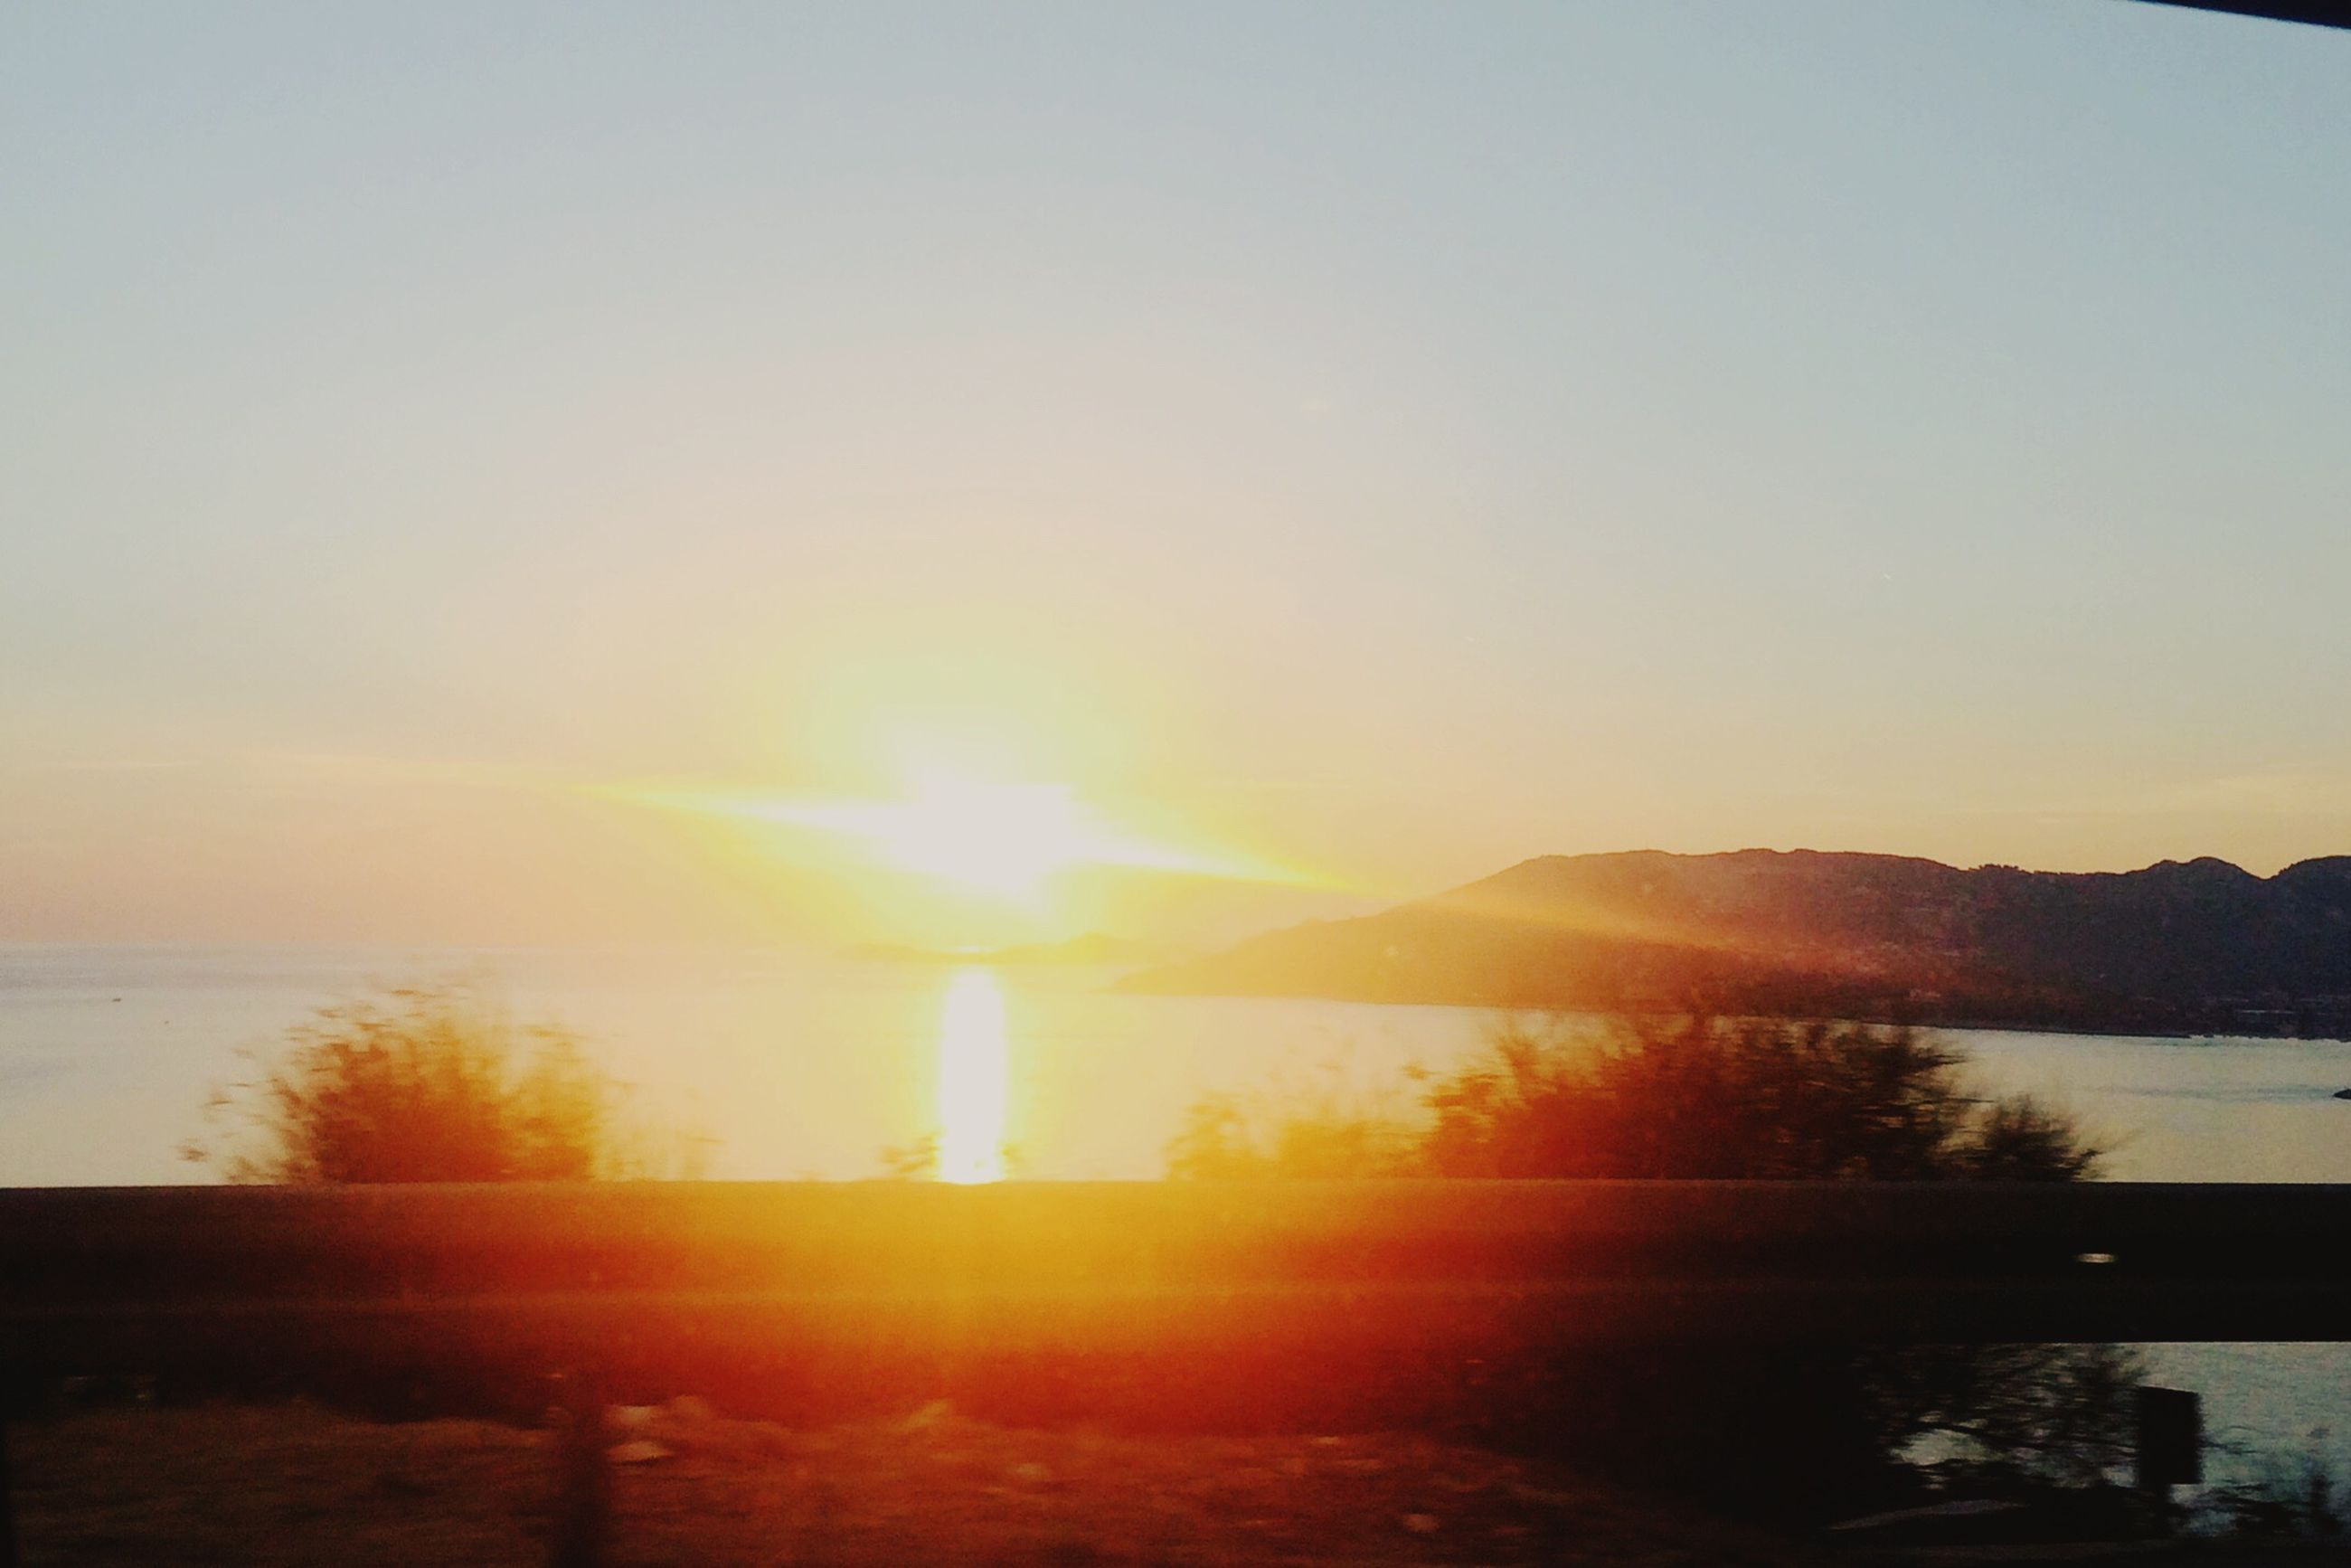 sunset, tranquil scene, scenics, sun, water, tranquility, beauty in nature, sunbeam, sunlight, mountain, reflection, lake, orange color, idyllic, majestic, lens flare, non-urban scene, nature, glowing, bright, sky, sea, calm, outdoors, standing water, remote, vibrant color, mountain range, romantic sky, no people